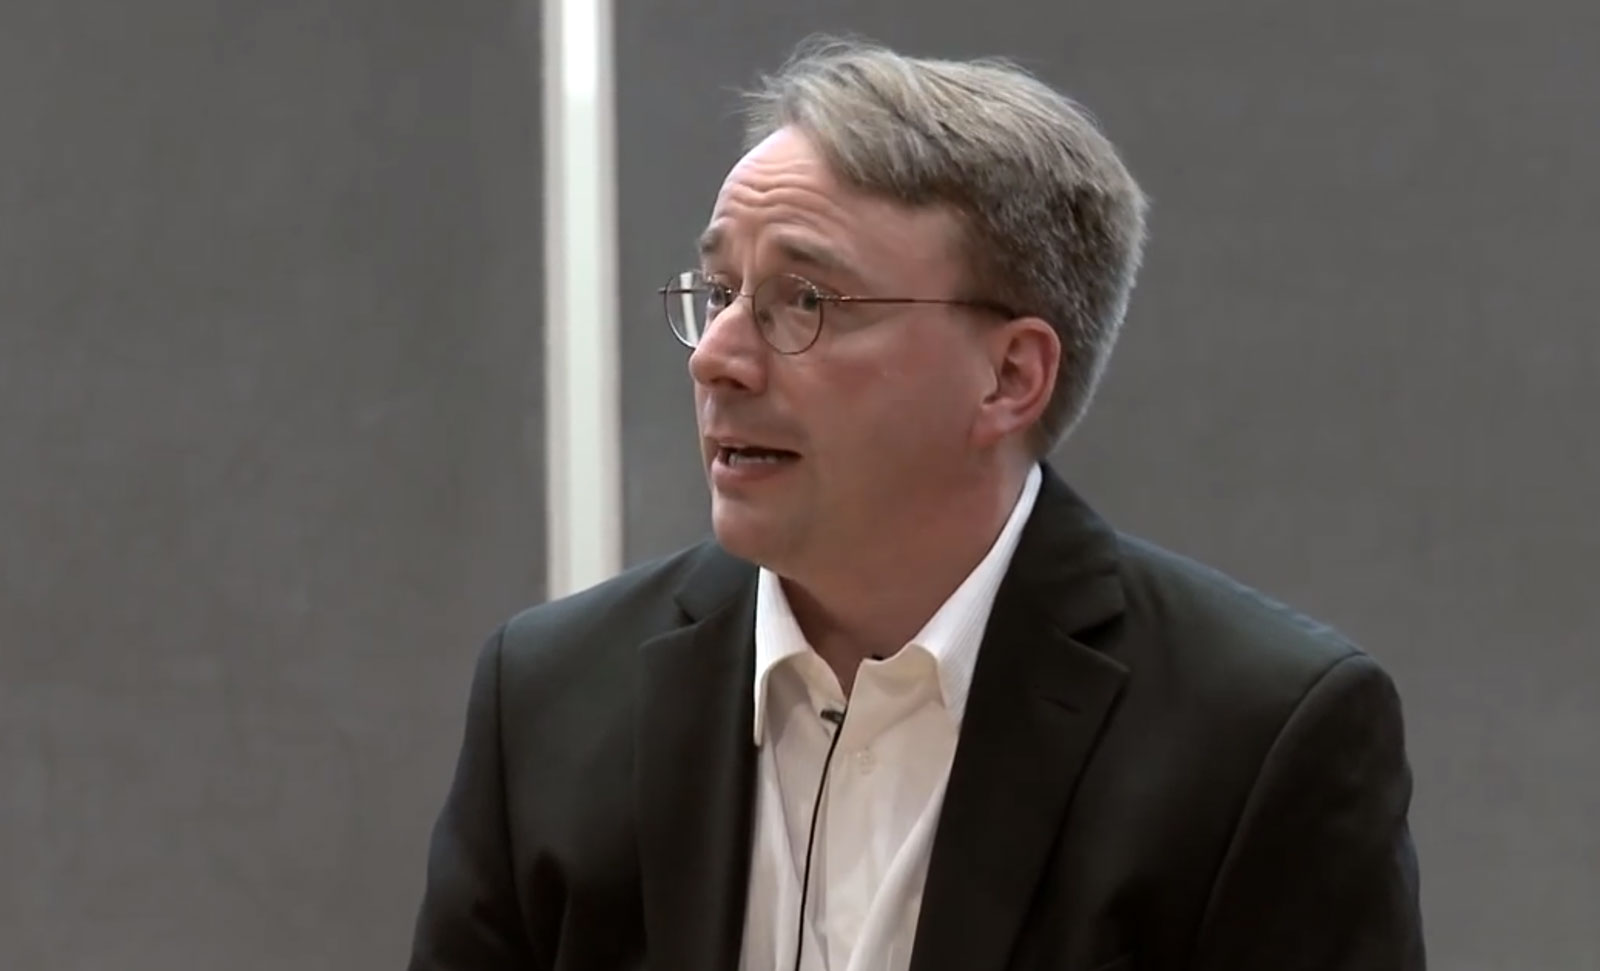 Linus Torvalds in 2012 offers a scathing opinion at the Aalto Center for Entrepreneurship in Finland. Nvidia's move toward cooperating with open-source programmers helped change Torvalds' mind.